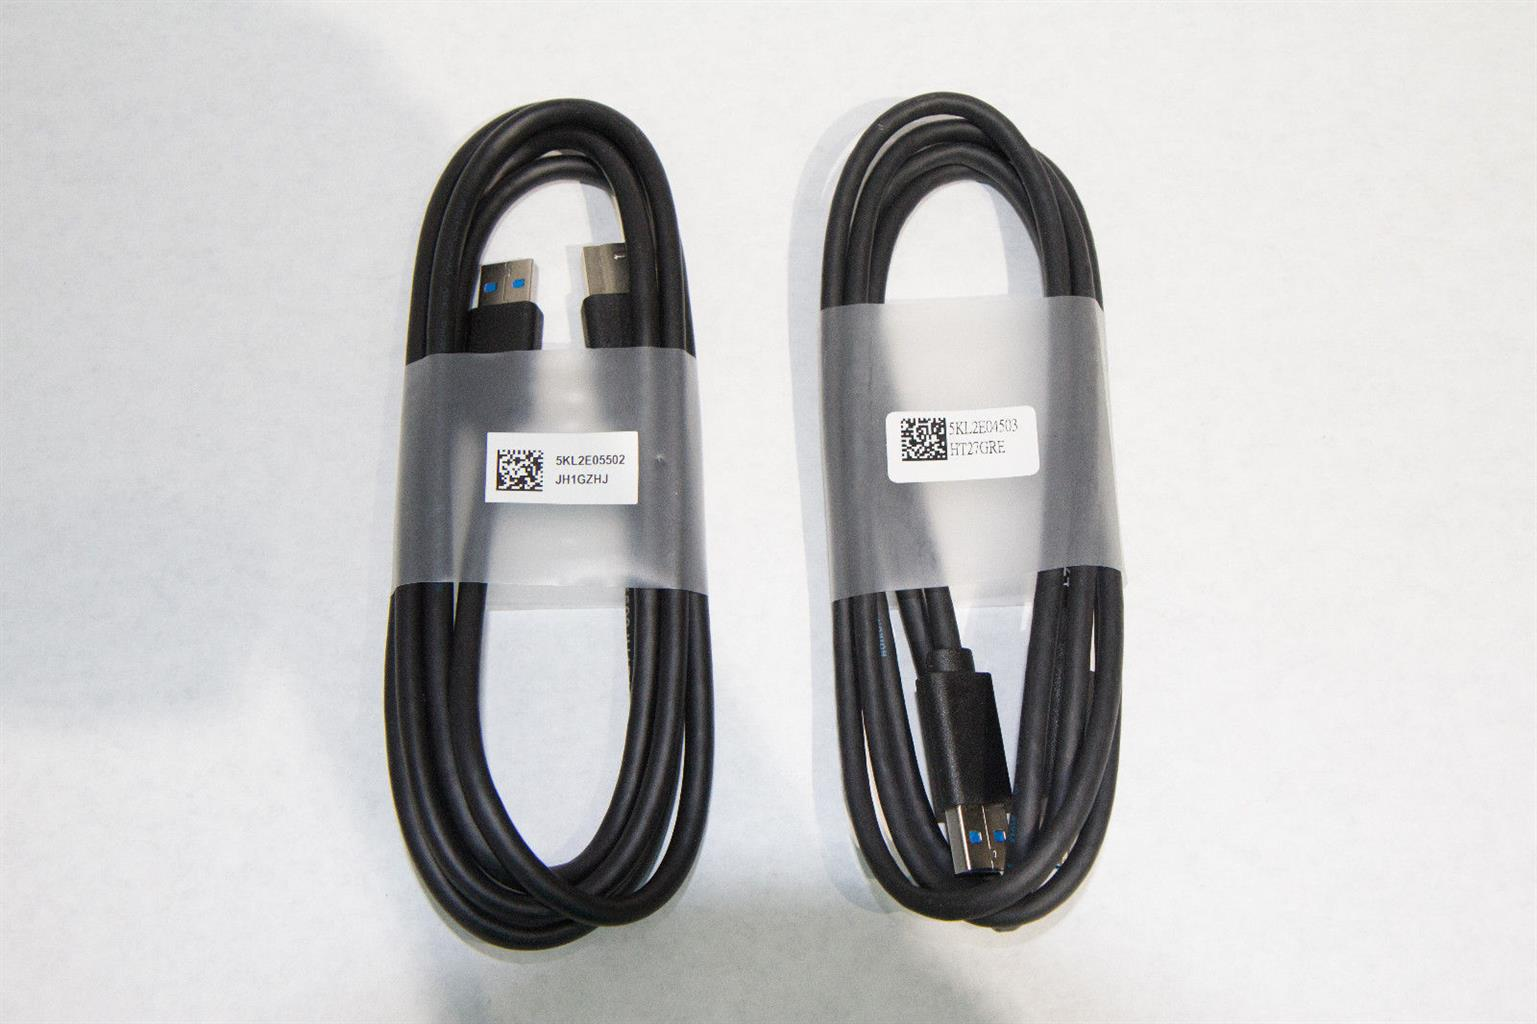 Lot of 38 Dell USB 3.0 Type A to Type B Cables